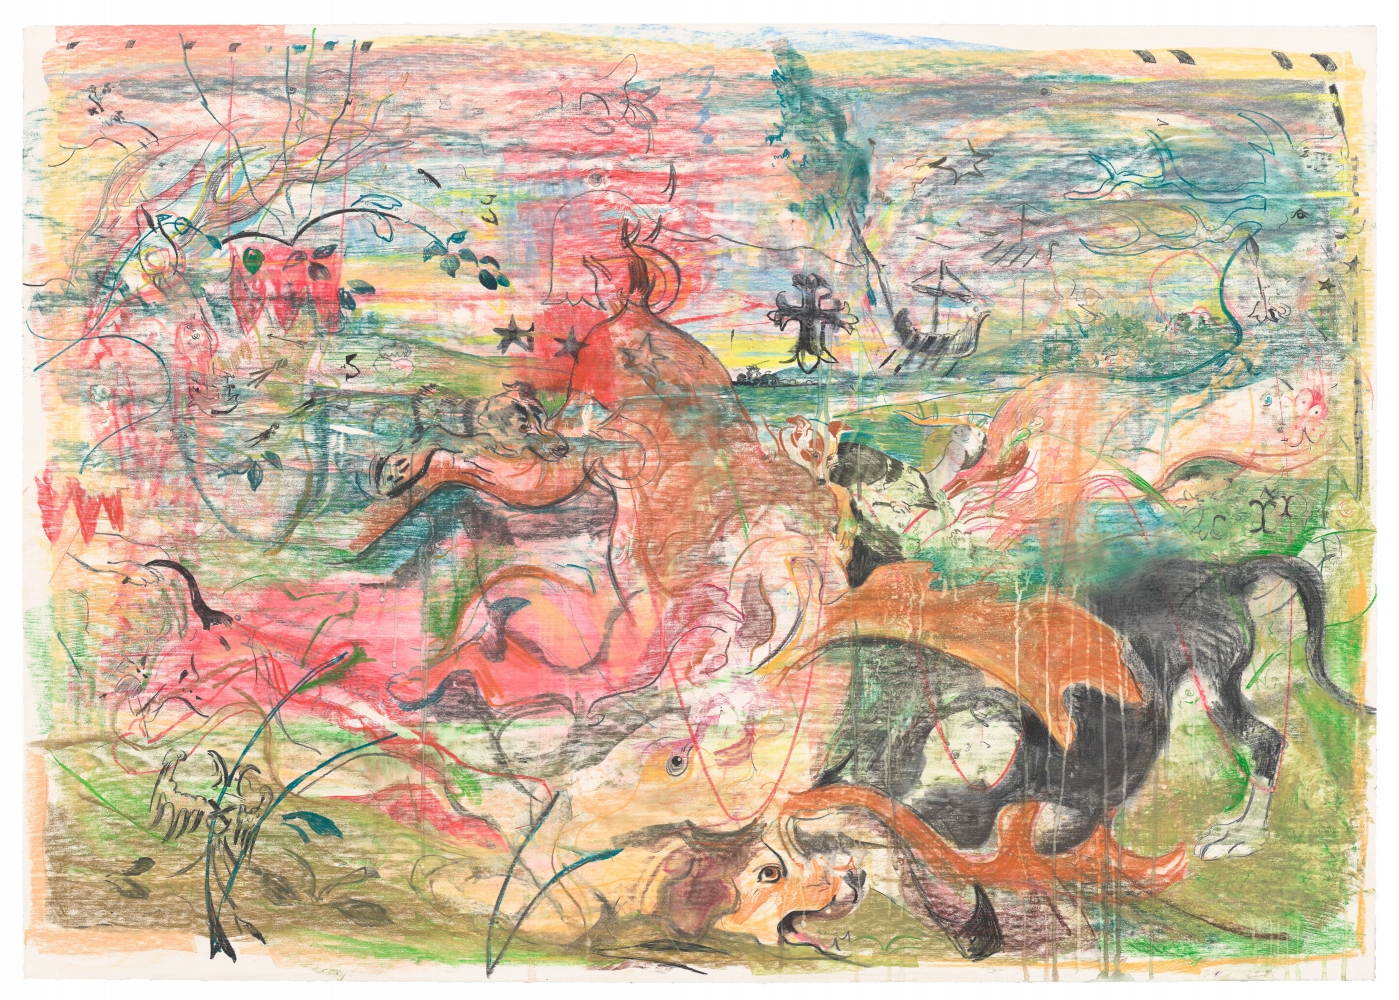 Cecily Brown, Untitled (The Calls of the Hunting Horn), 2019